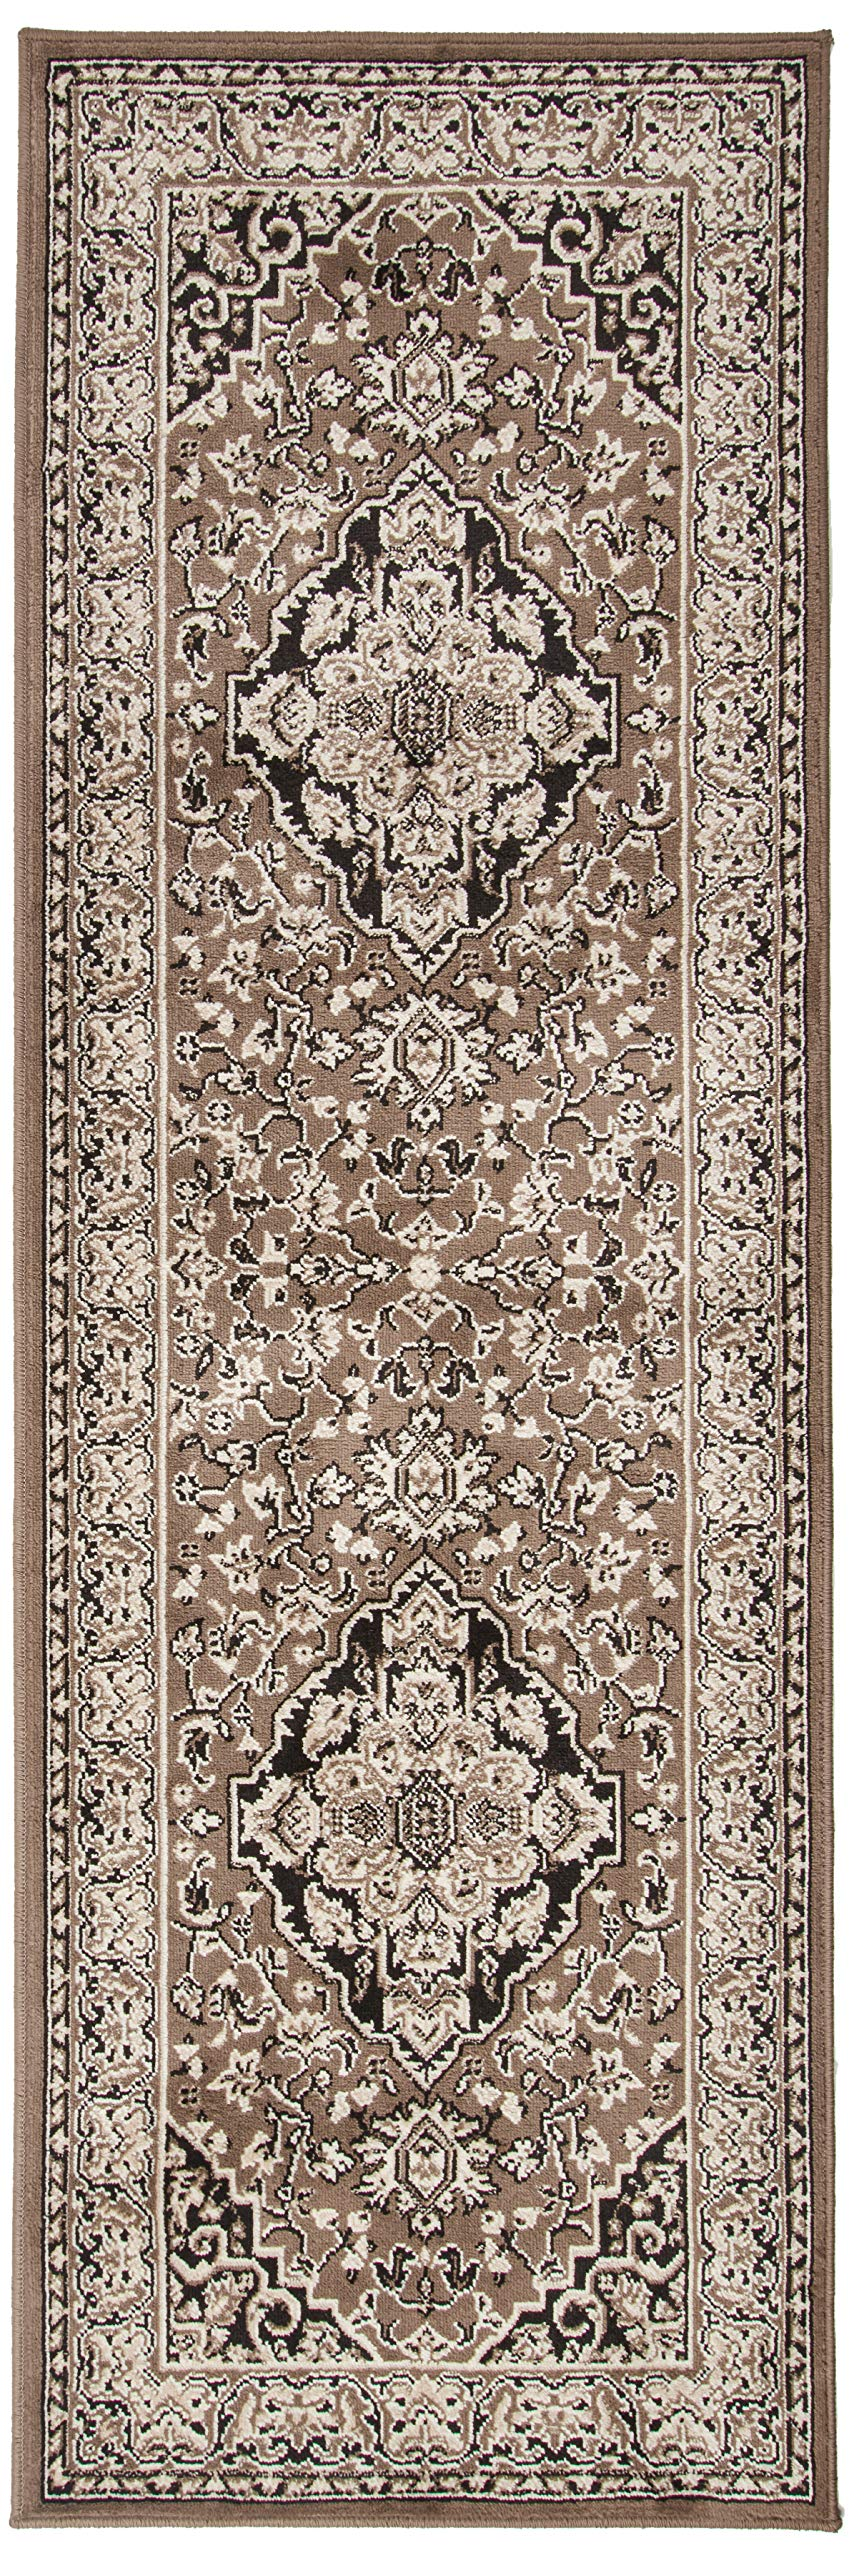 """Superior Elegant Glendale Collection Area Rug, 8mm Pile Height with Jute Backing, Traditional Oriental Rug Design, Anti-Static, Water-Repellent Rugs - Brown, 2'7"""" x 8' Runner"""